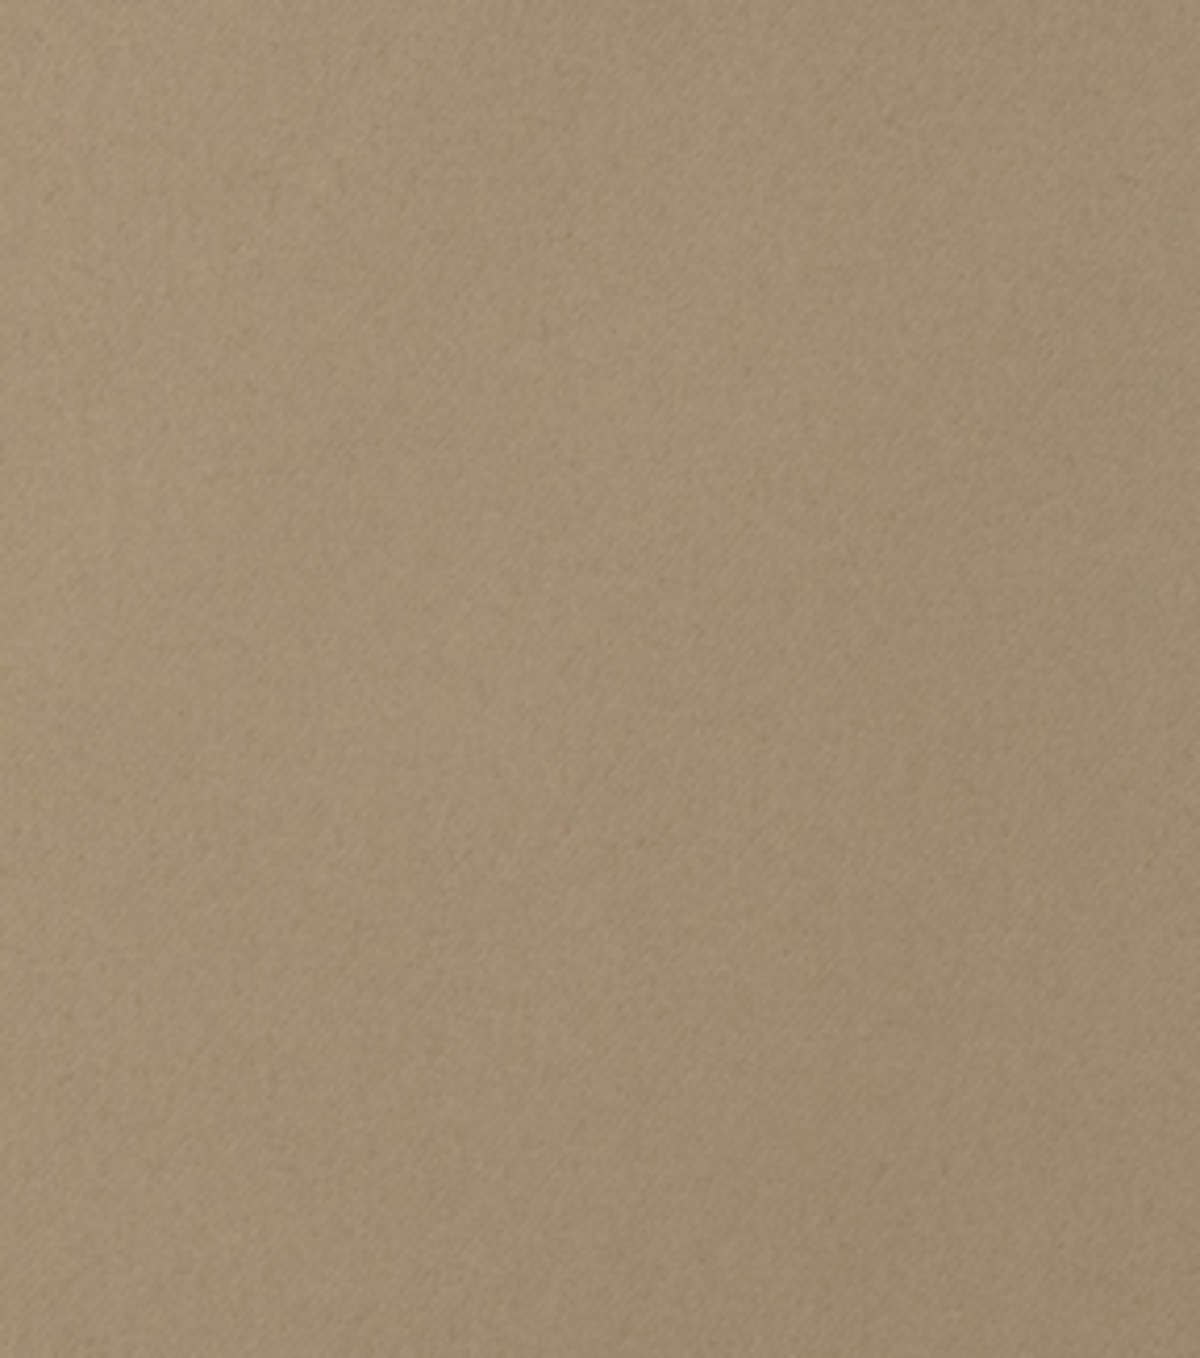 Home Decor 8\u0022x8\u0022 Fabric Swatch-Signature Series Birzai Mushroom